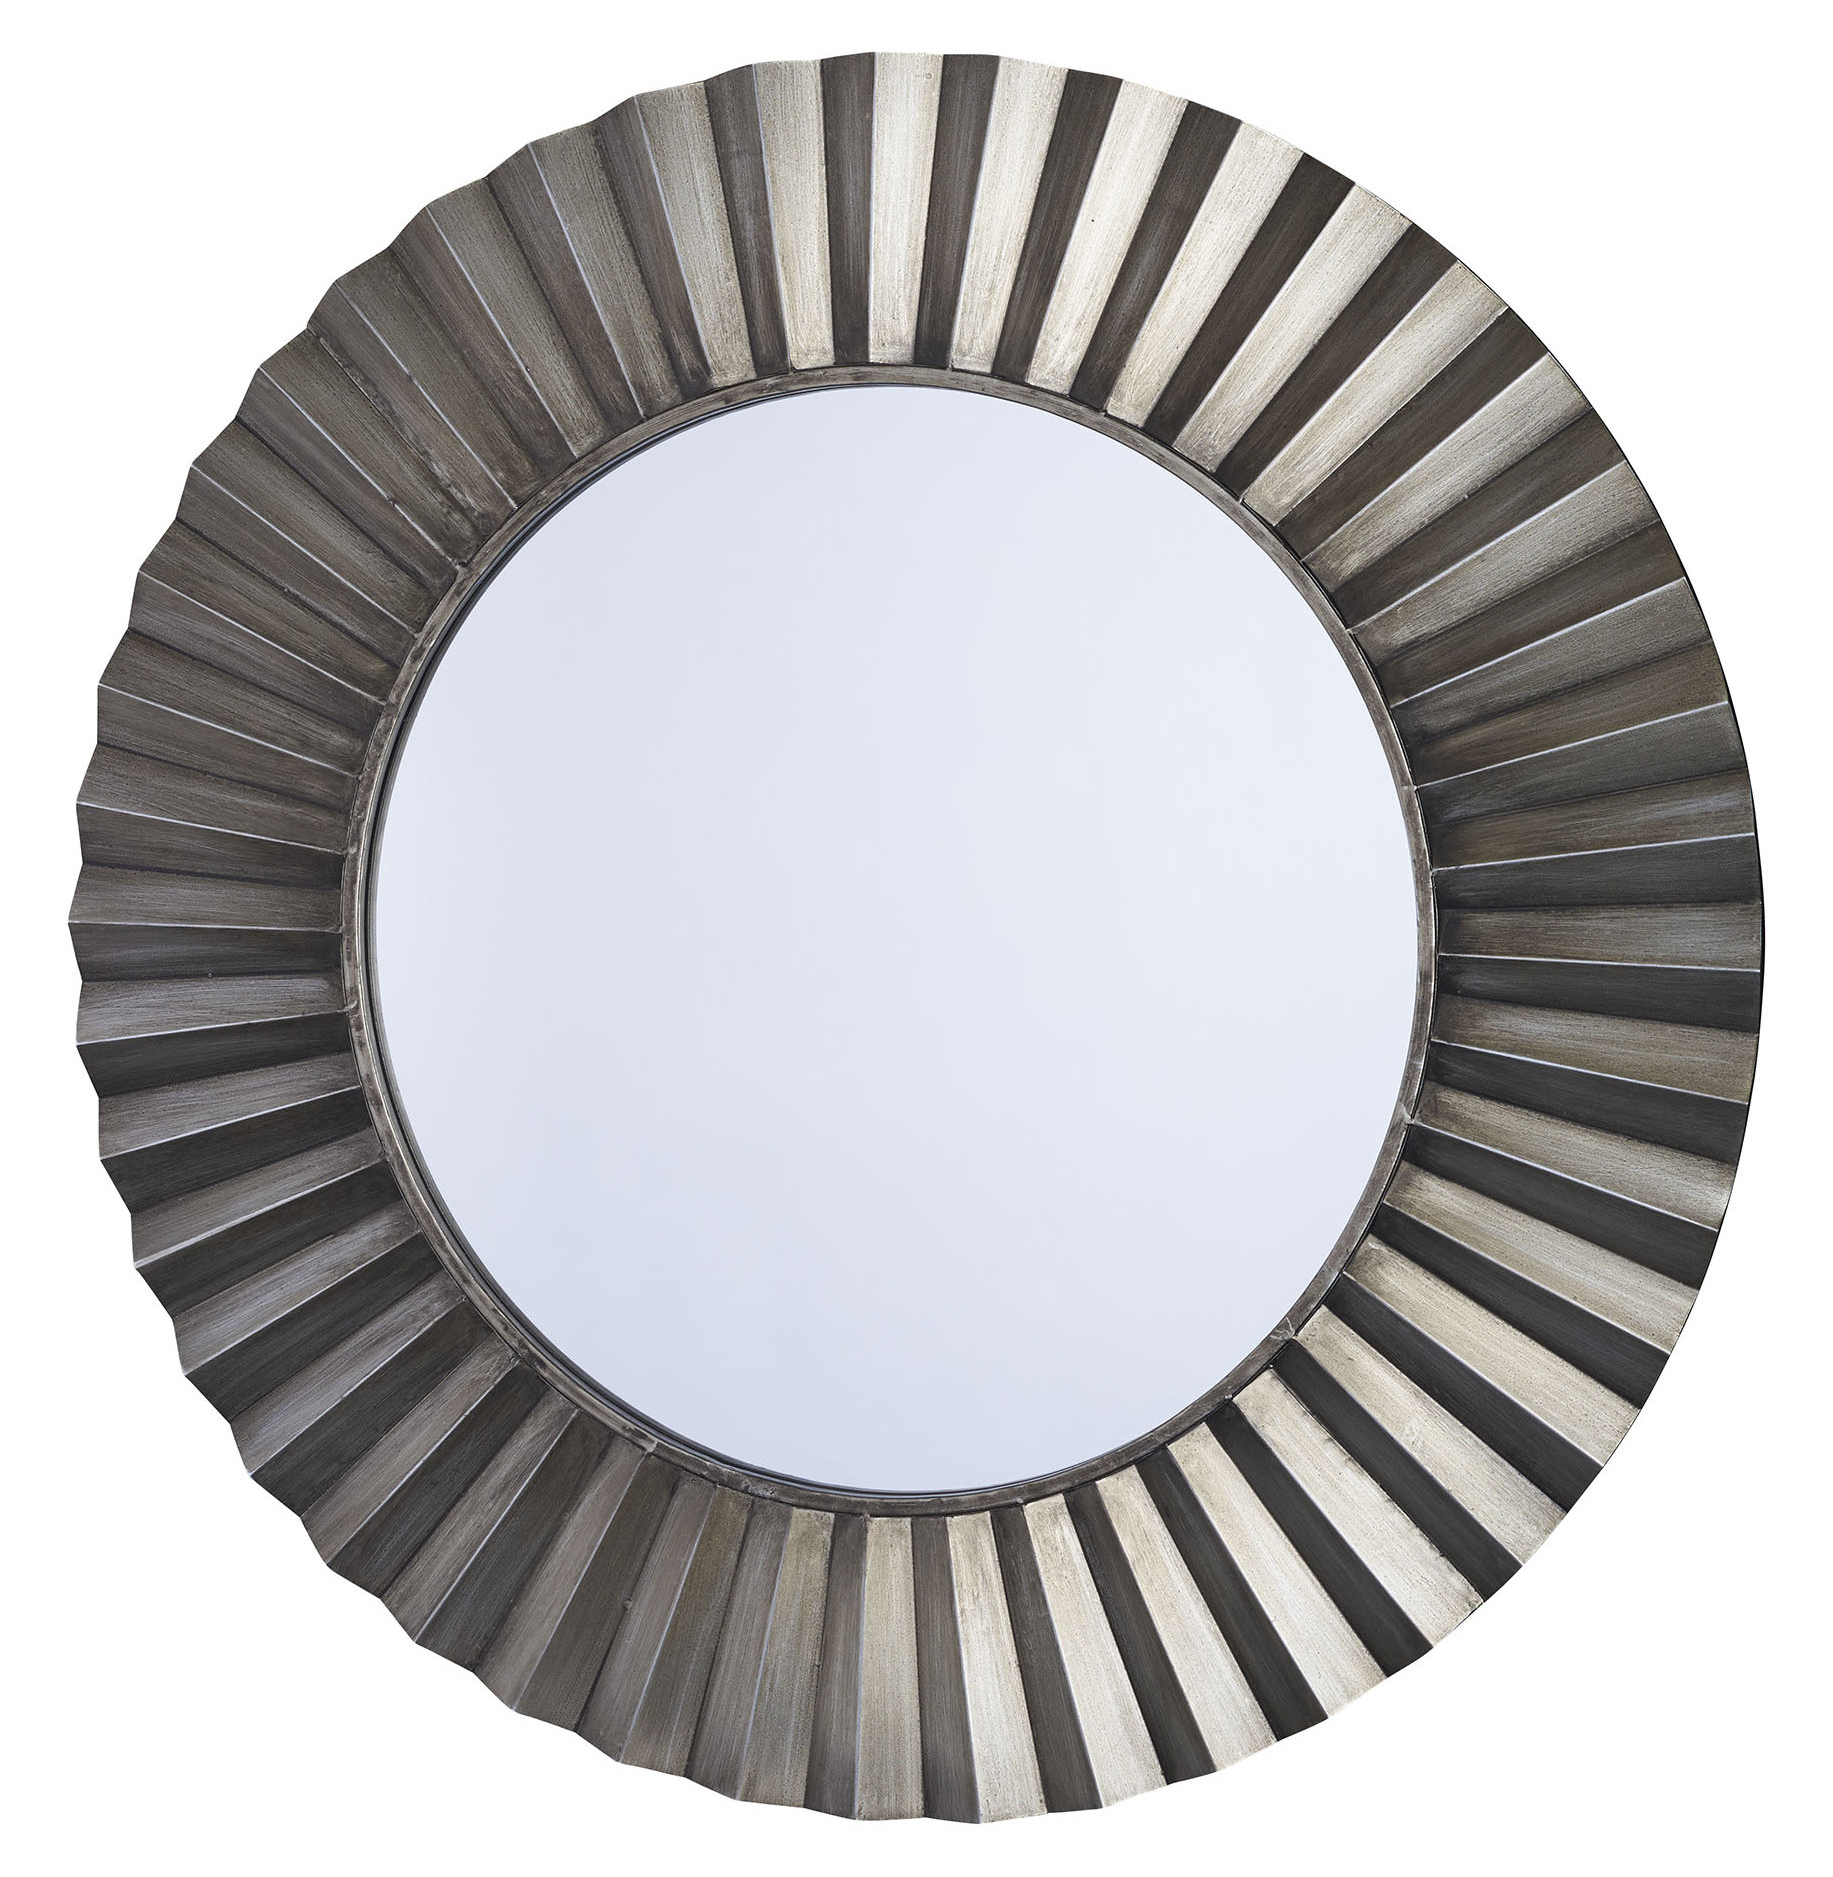 Most Popular Point Reyes Molten Round Wall Mirrors With Sunburst Round Wall Mirror (View 11 of 20)